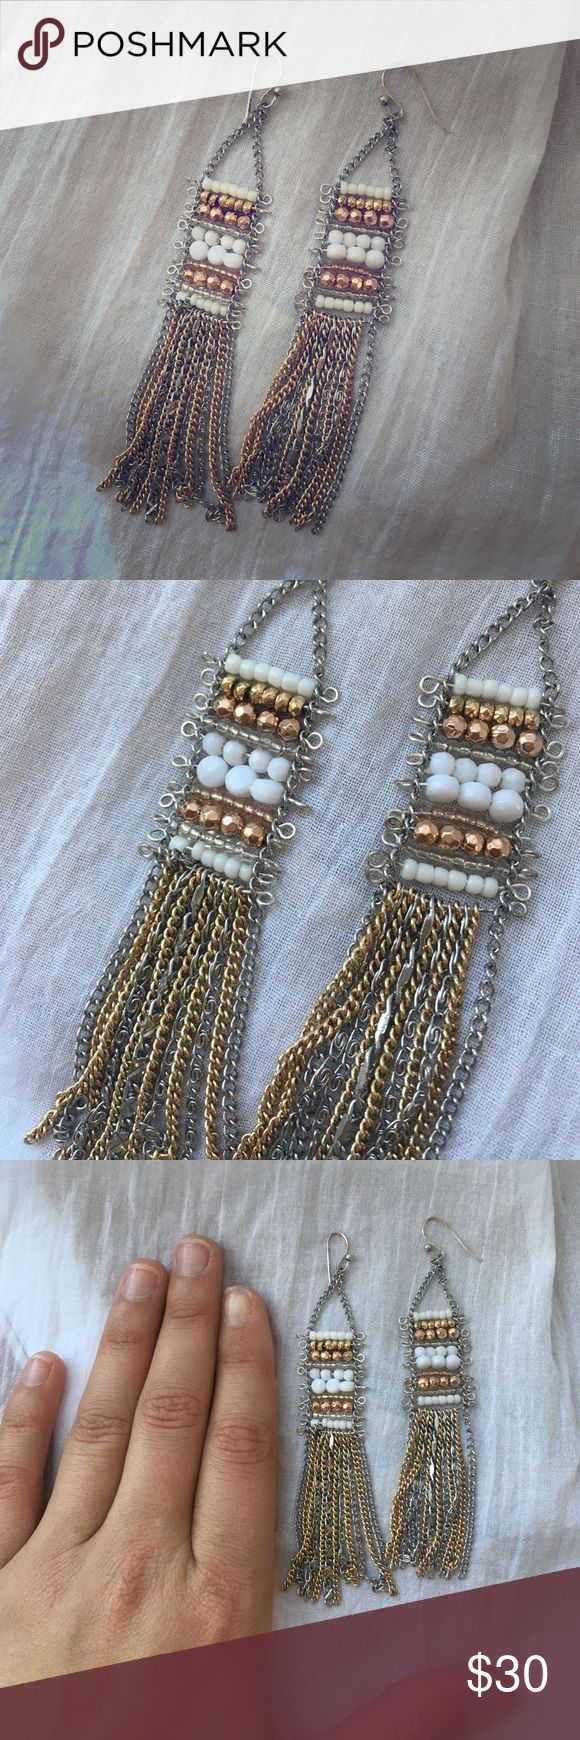 Stella & Dot Tassel Drop earrings Stella & Dot never been worn- great going out earrings or everyday work! The mixed silver bronze and gold make these extremely versatile! Stella & Dot Jewelry Earrings